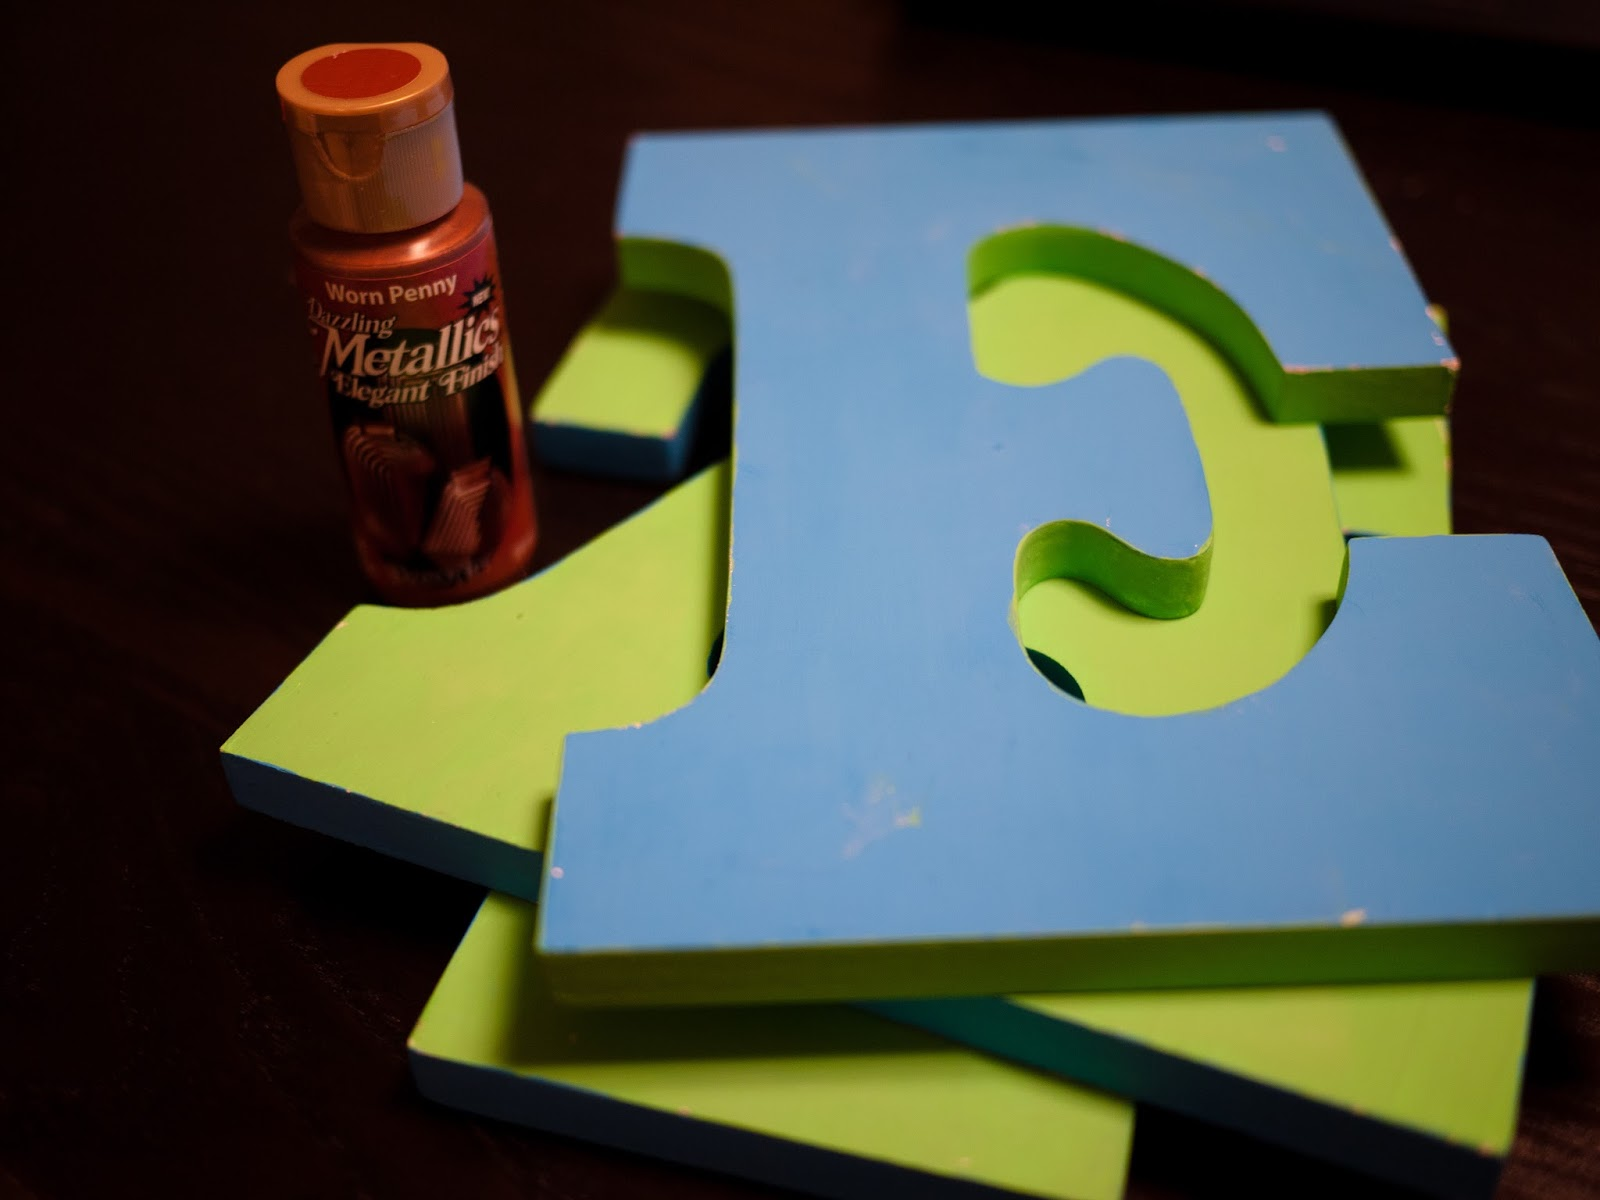 sprinkledwithcolor: PENNY LETTERS FOR THE KITCHEN